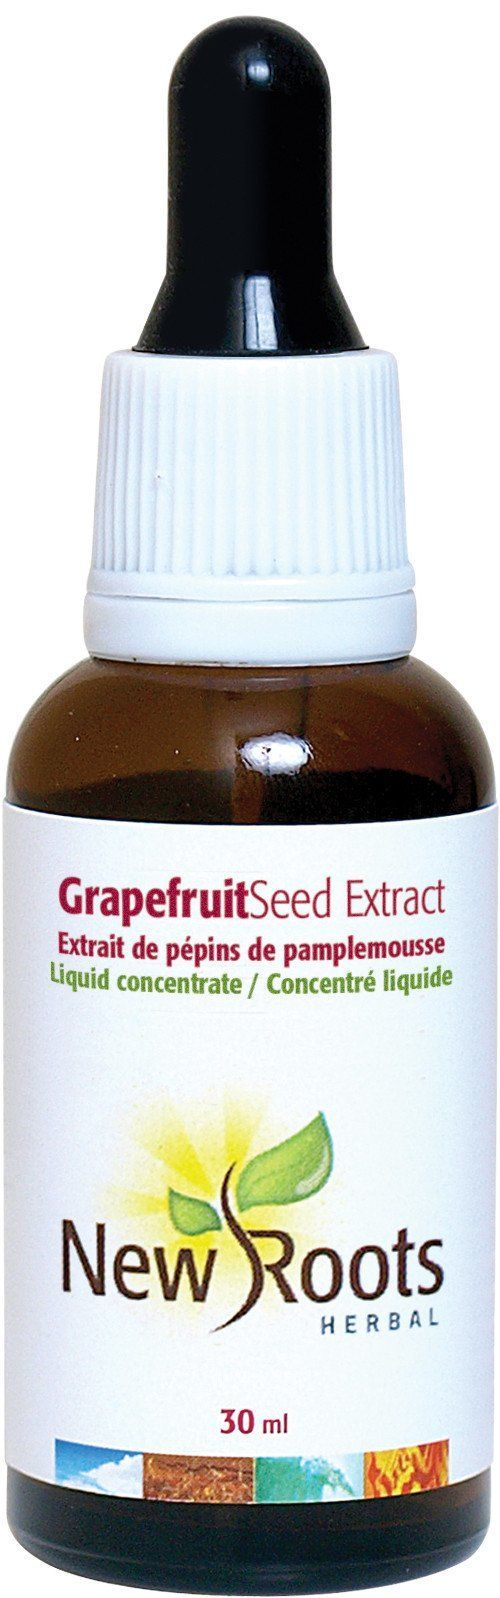 Supplements & Vitamins - New Roots Herbal - Grapefruit Seed Extract, 30ml